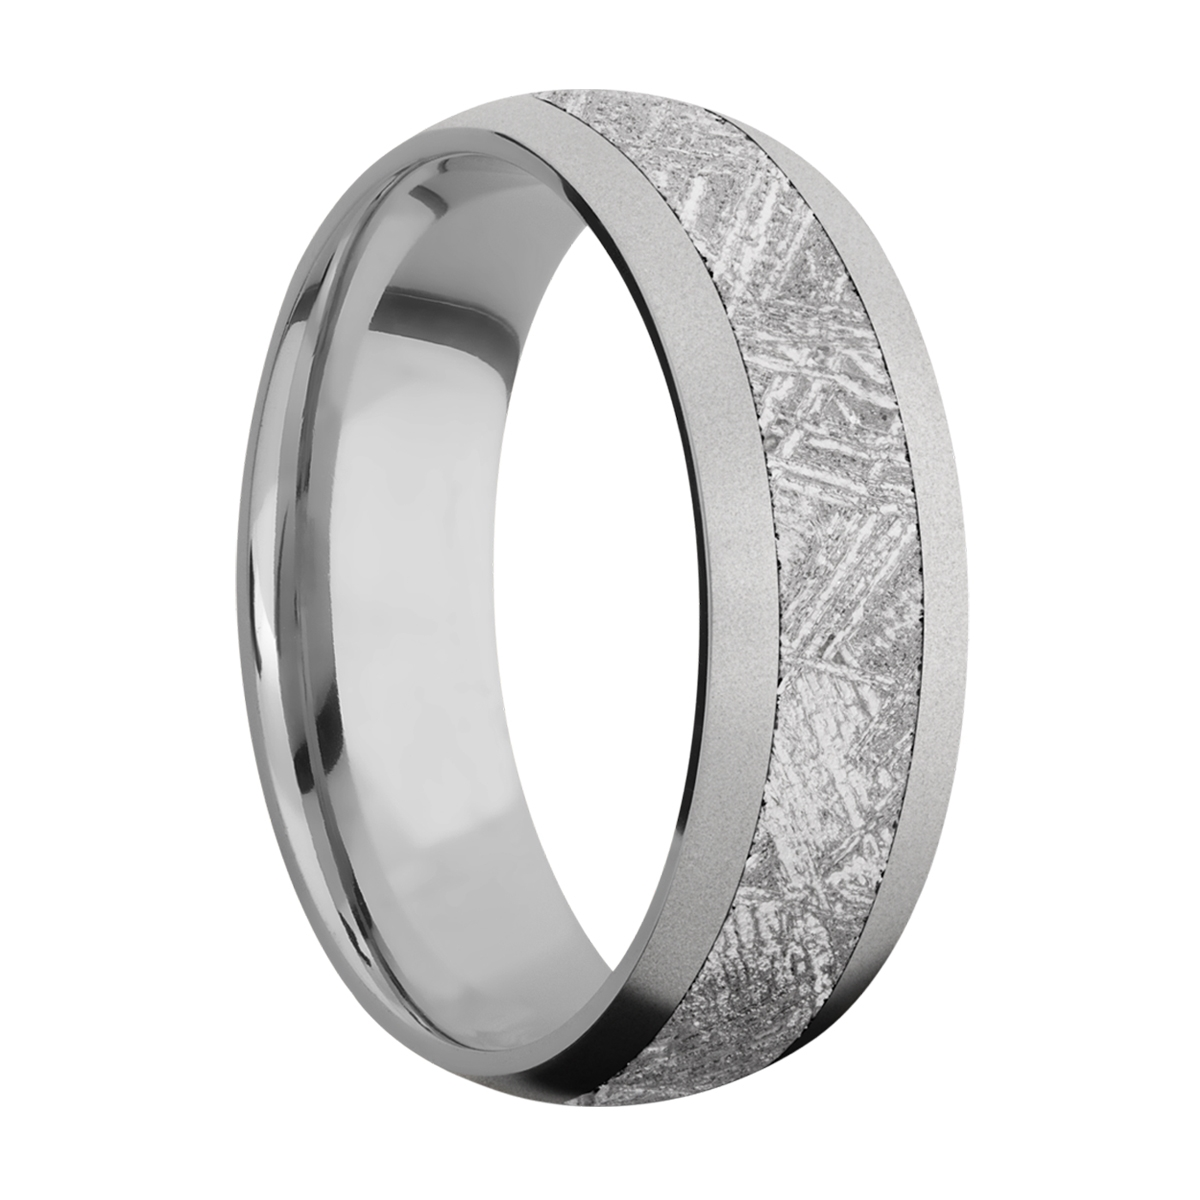 Lashbrook 7D14/METEORITE Titanium Wedding Ring or Band Alternative View 1